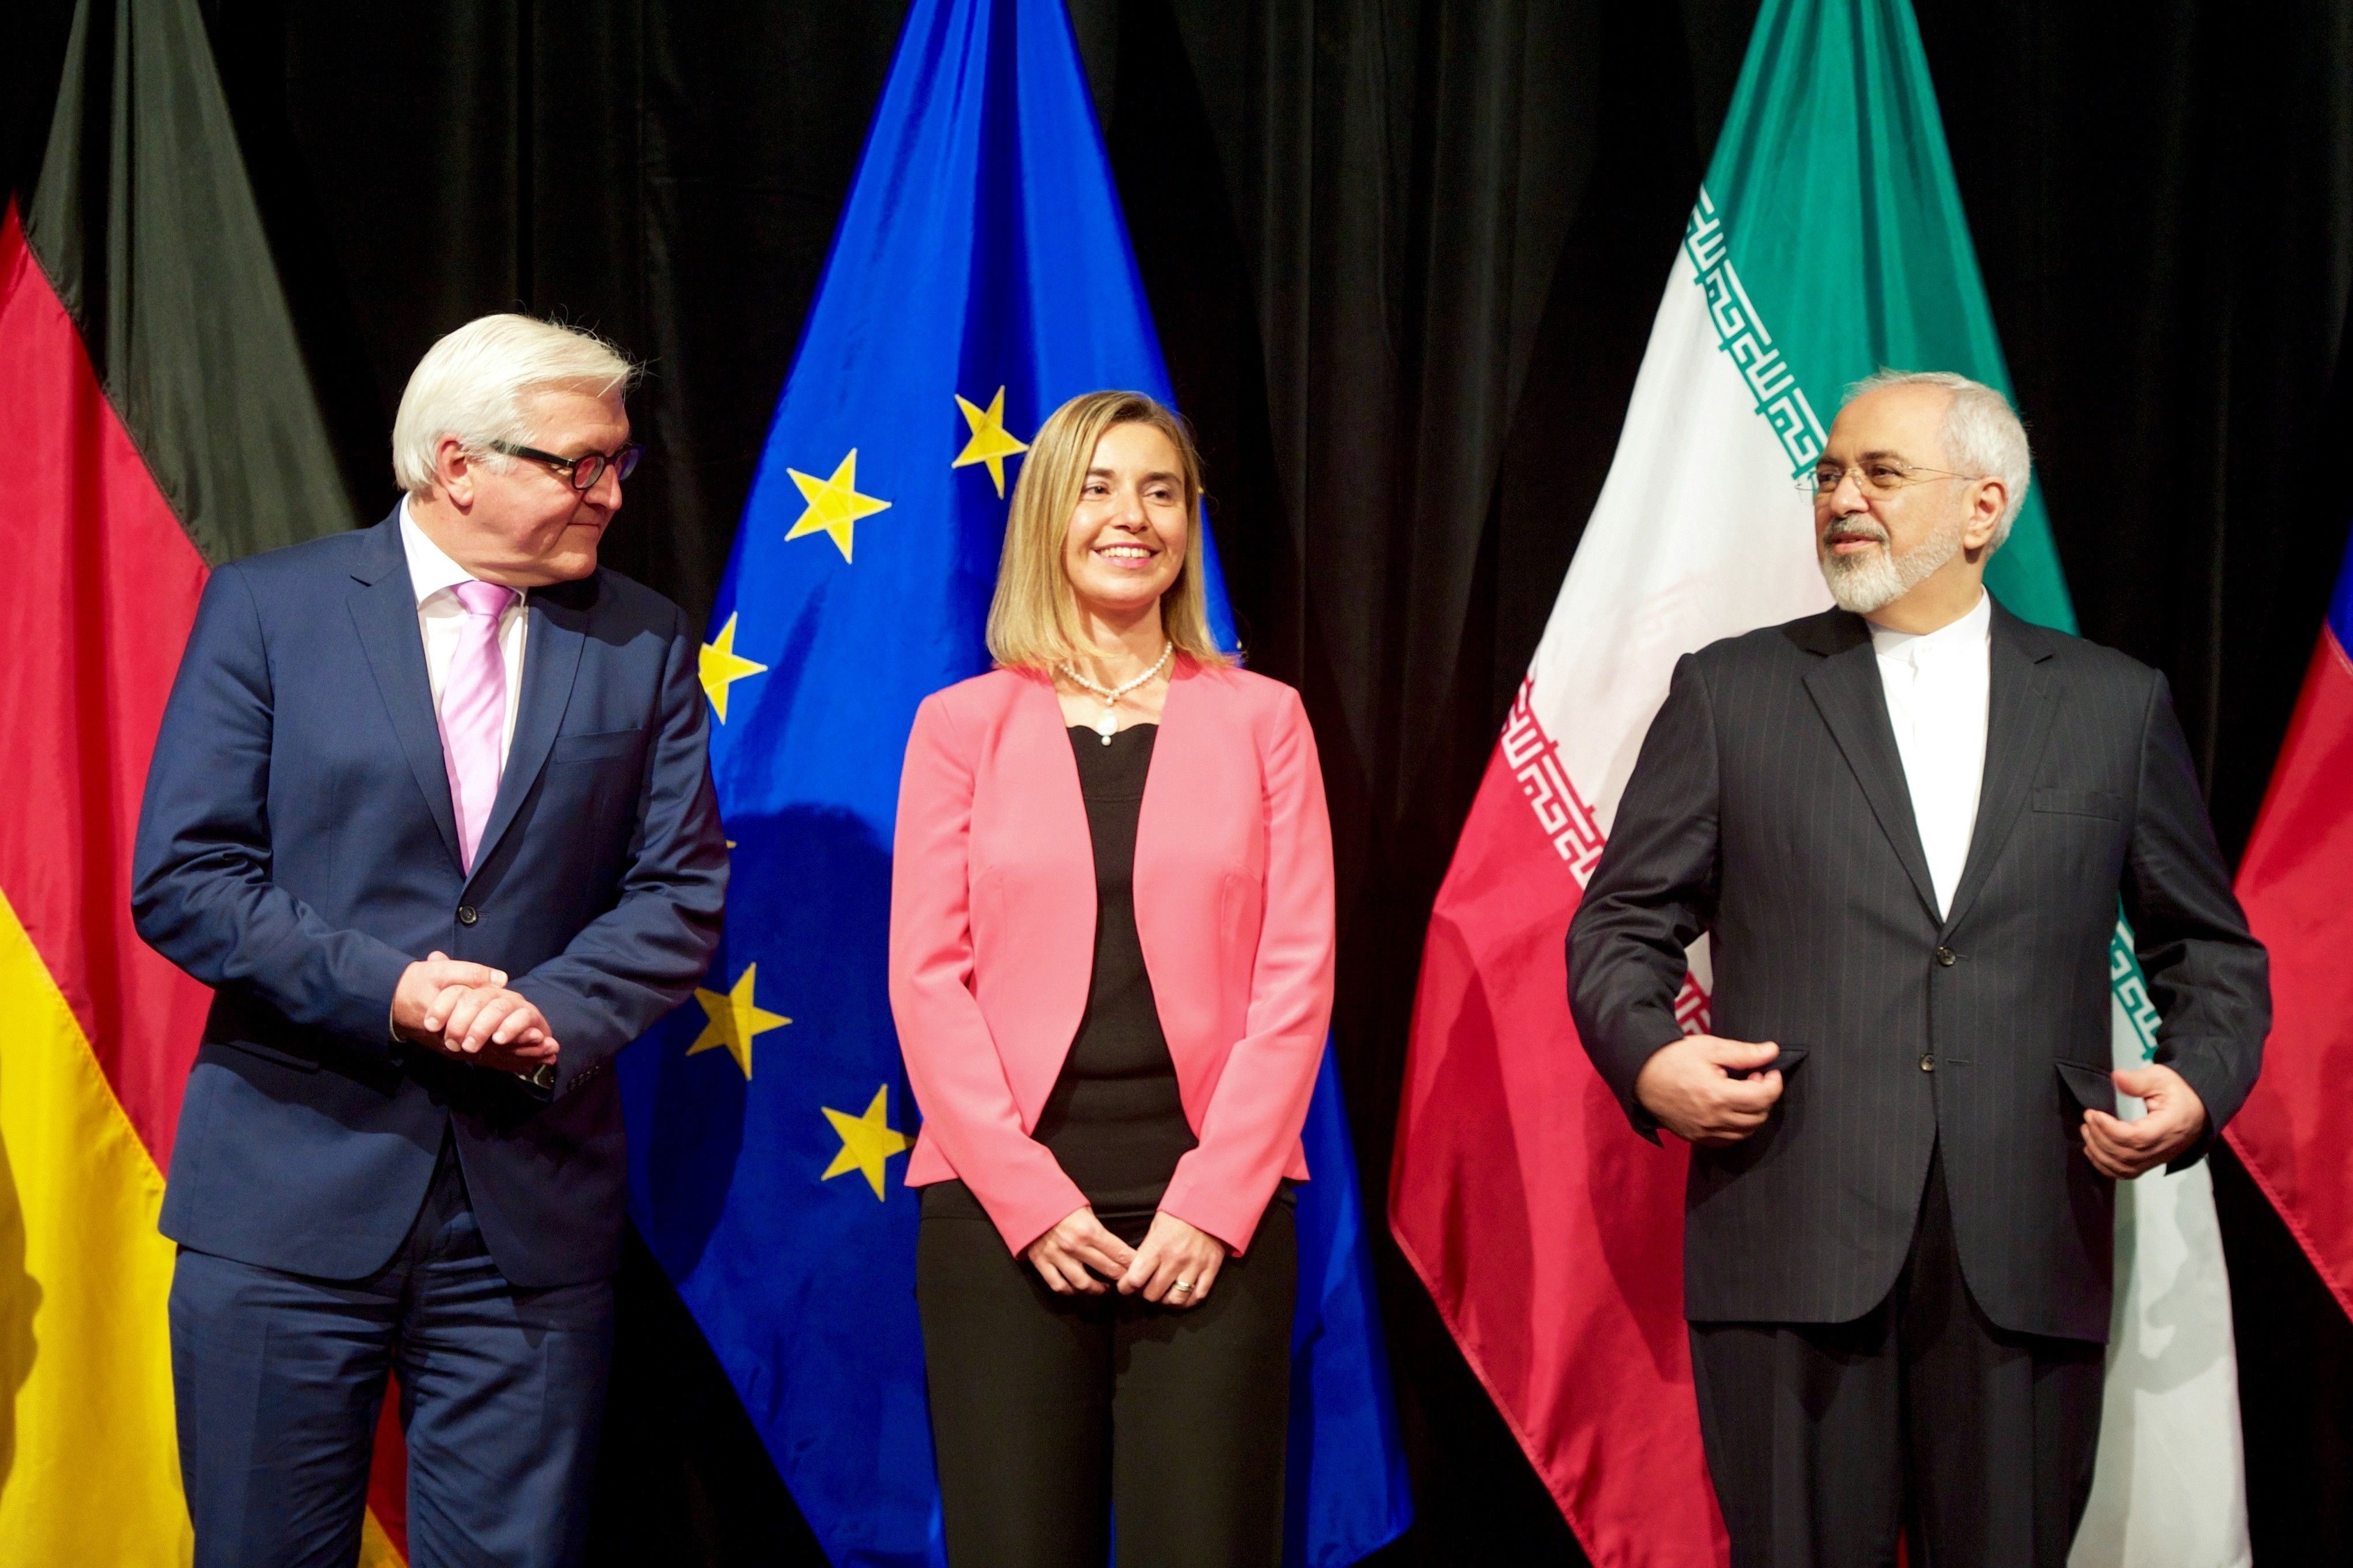 German_Foreign_Minister_Steinmeier_EU_High_Representative_Mogherini_and_Iranian_Foreign_Minister_Zarif_Stand_for_a_Group_Photo_After_EU_P51_Reached_Iran_Nuclear_Agreement_in_Austria